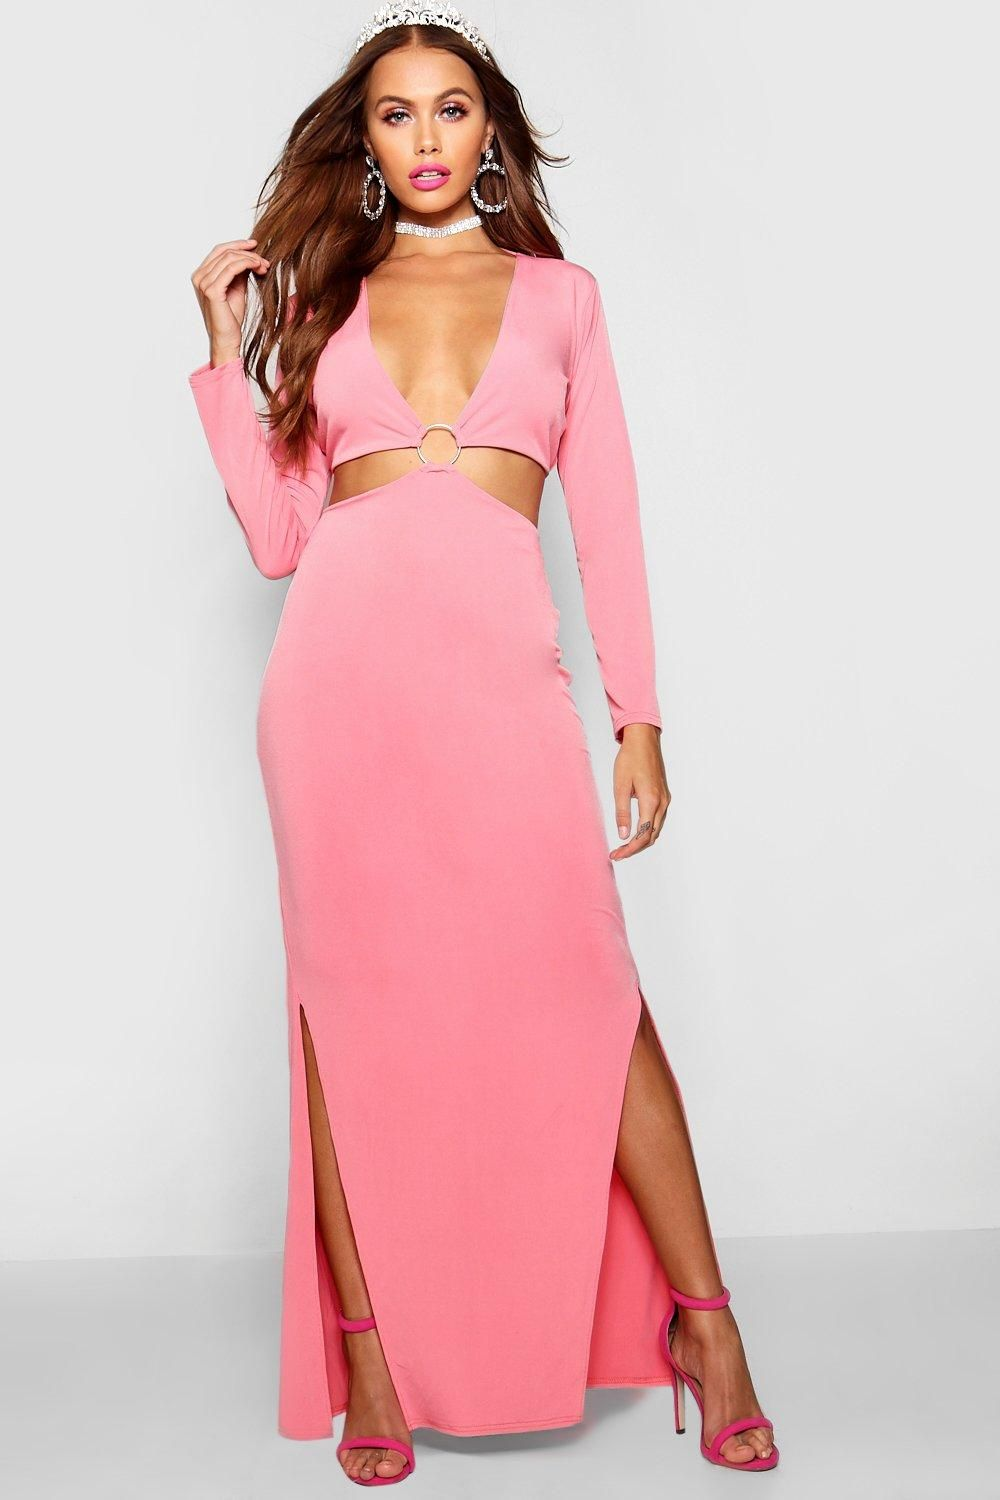 45070045a7 Paris Hilton Ring Detail Maxi Dress from Boohoo, part of our latest Paris  Hilton x boohoo collection